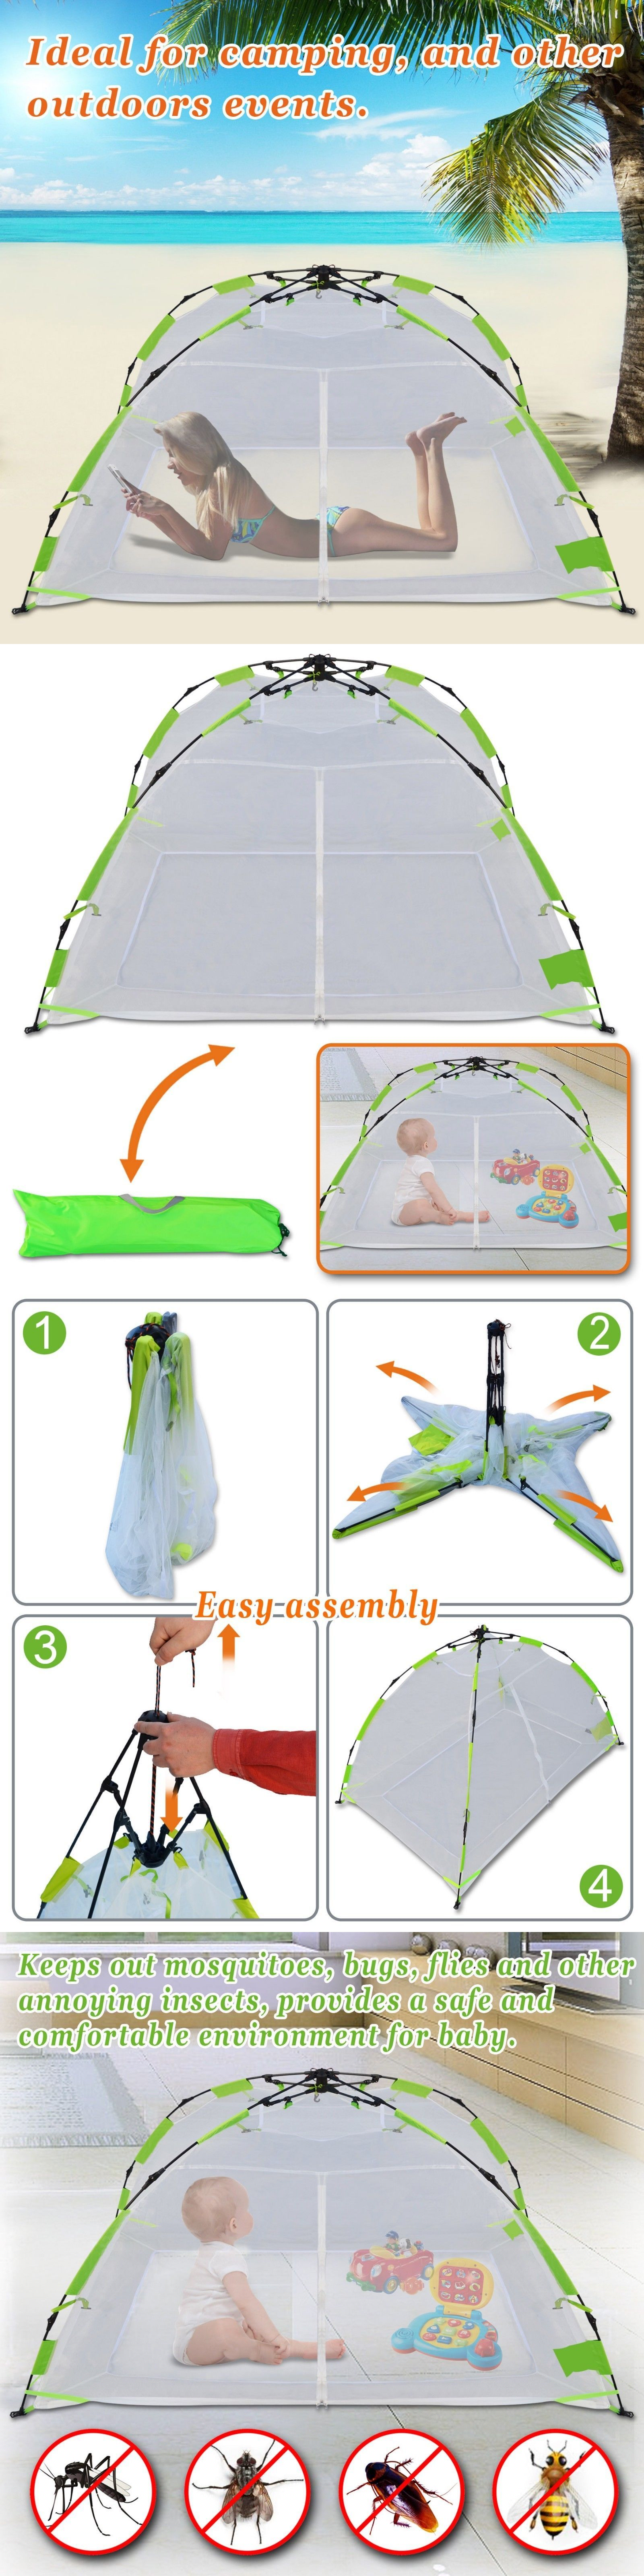 Canopies and Netting 180905 Kid Adult Pet Mosquito Multi-Use Net Pop Up Instant  sc 1 st  Pinterest & Canopies and Netting 180905: Kid Adult Pet Mosquito Multi-Use Net ...